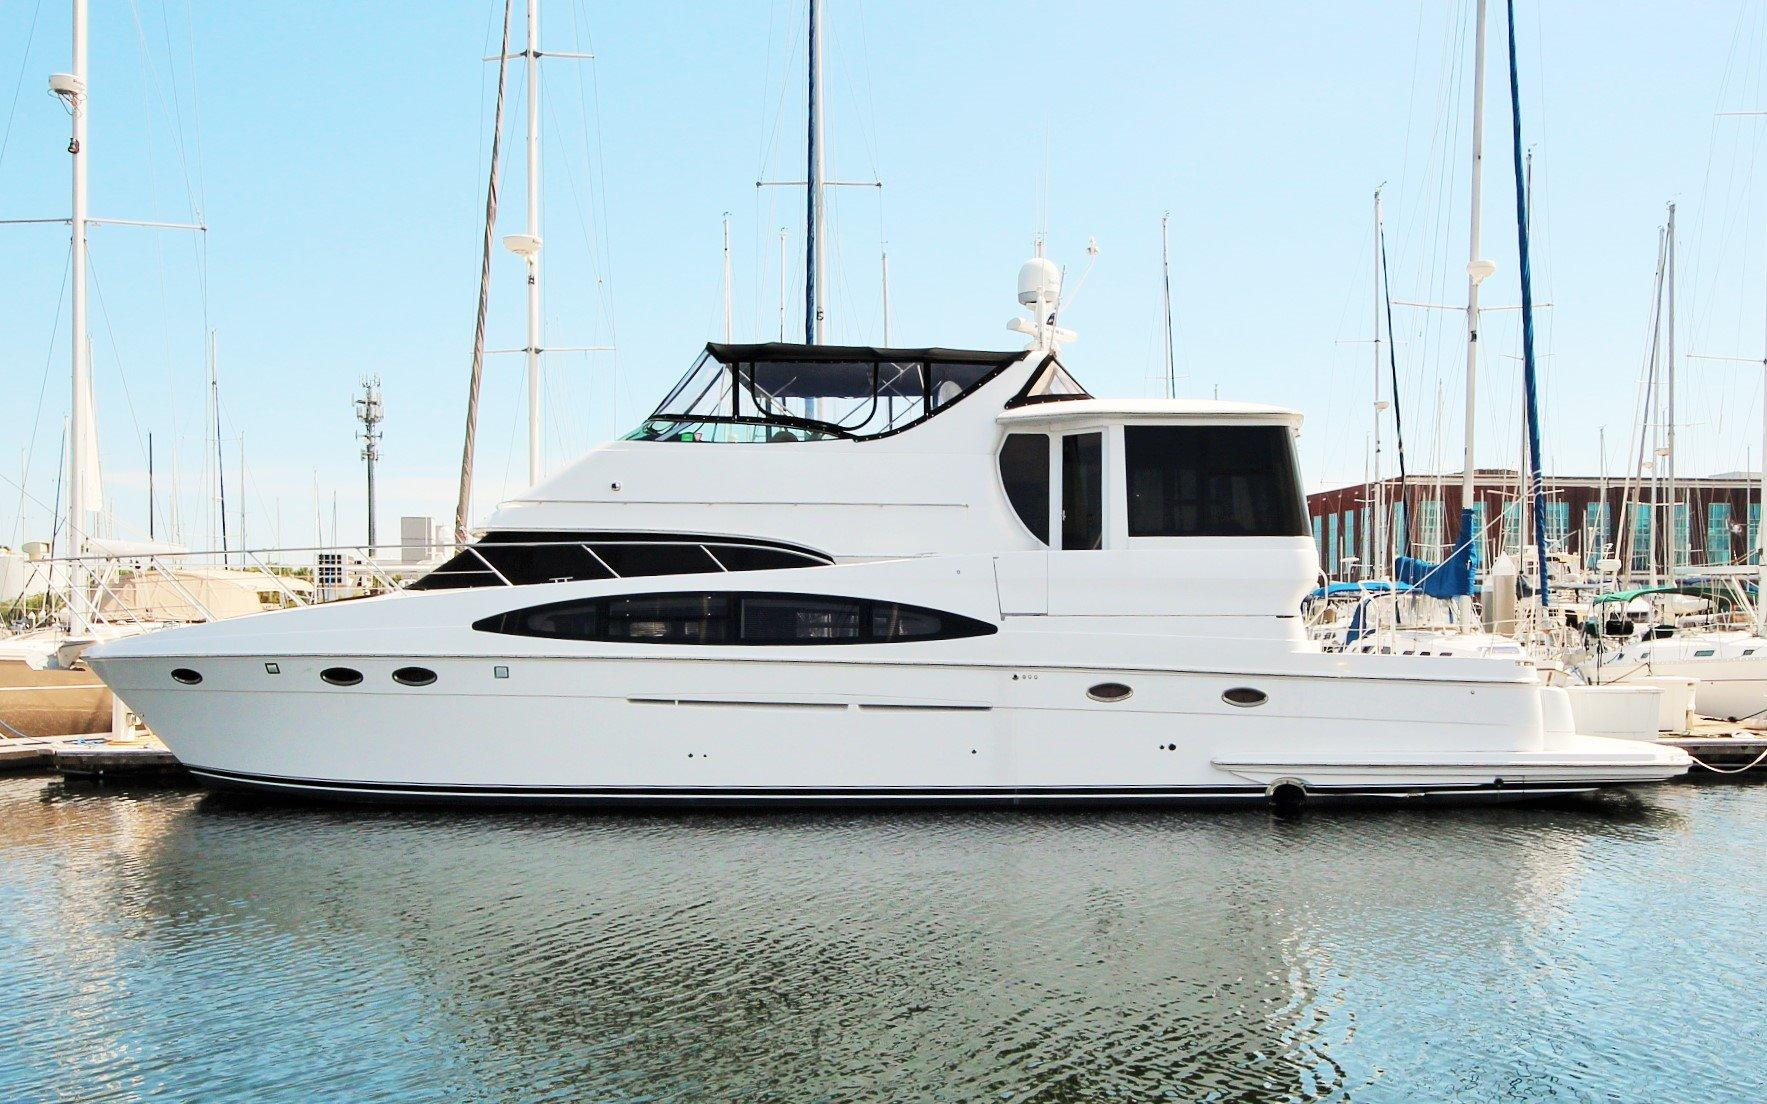 Used Carver Yachts For Sale - MLS Boat Search Results